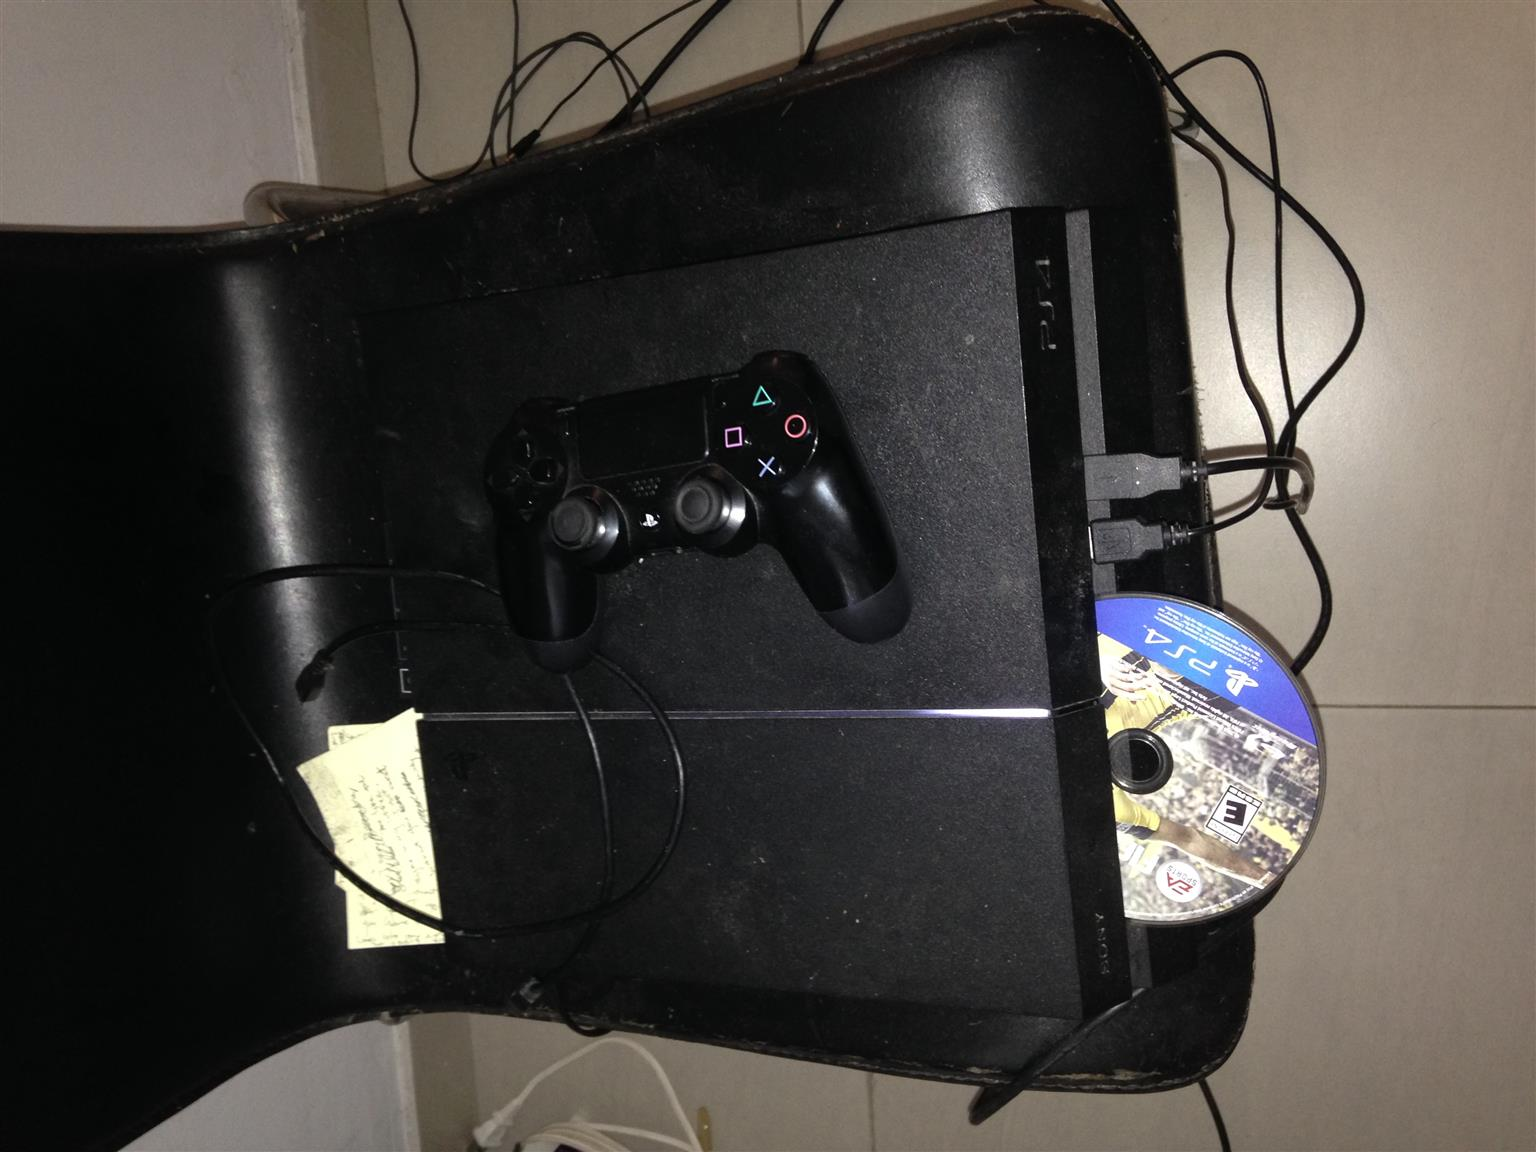 Ps4 Great Condition With Game R3800 Junk Mail Sony 500gb Dvd Fifa 2015